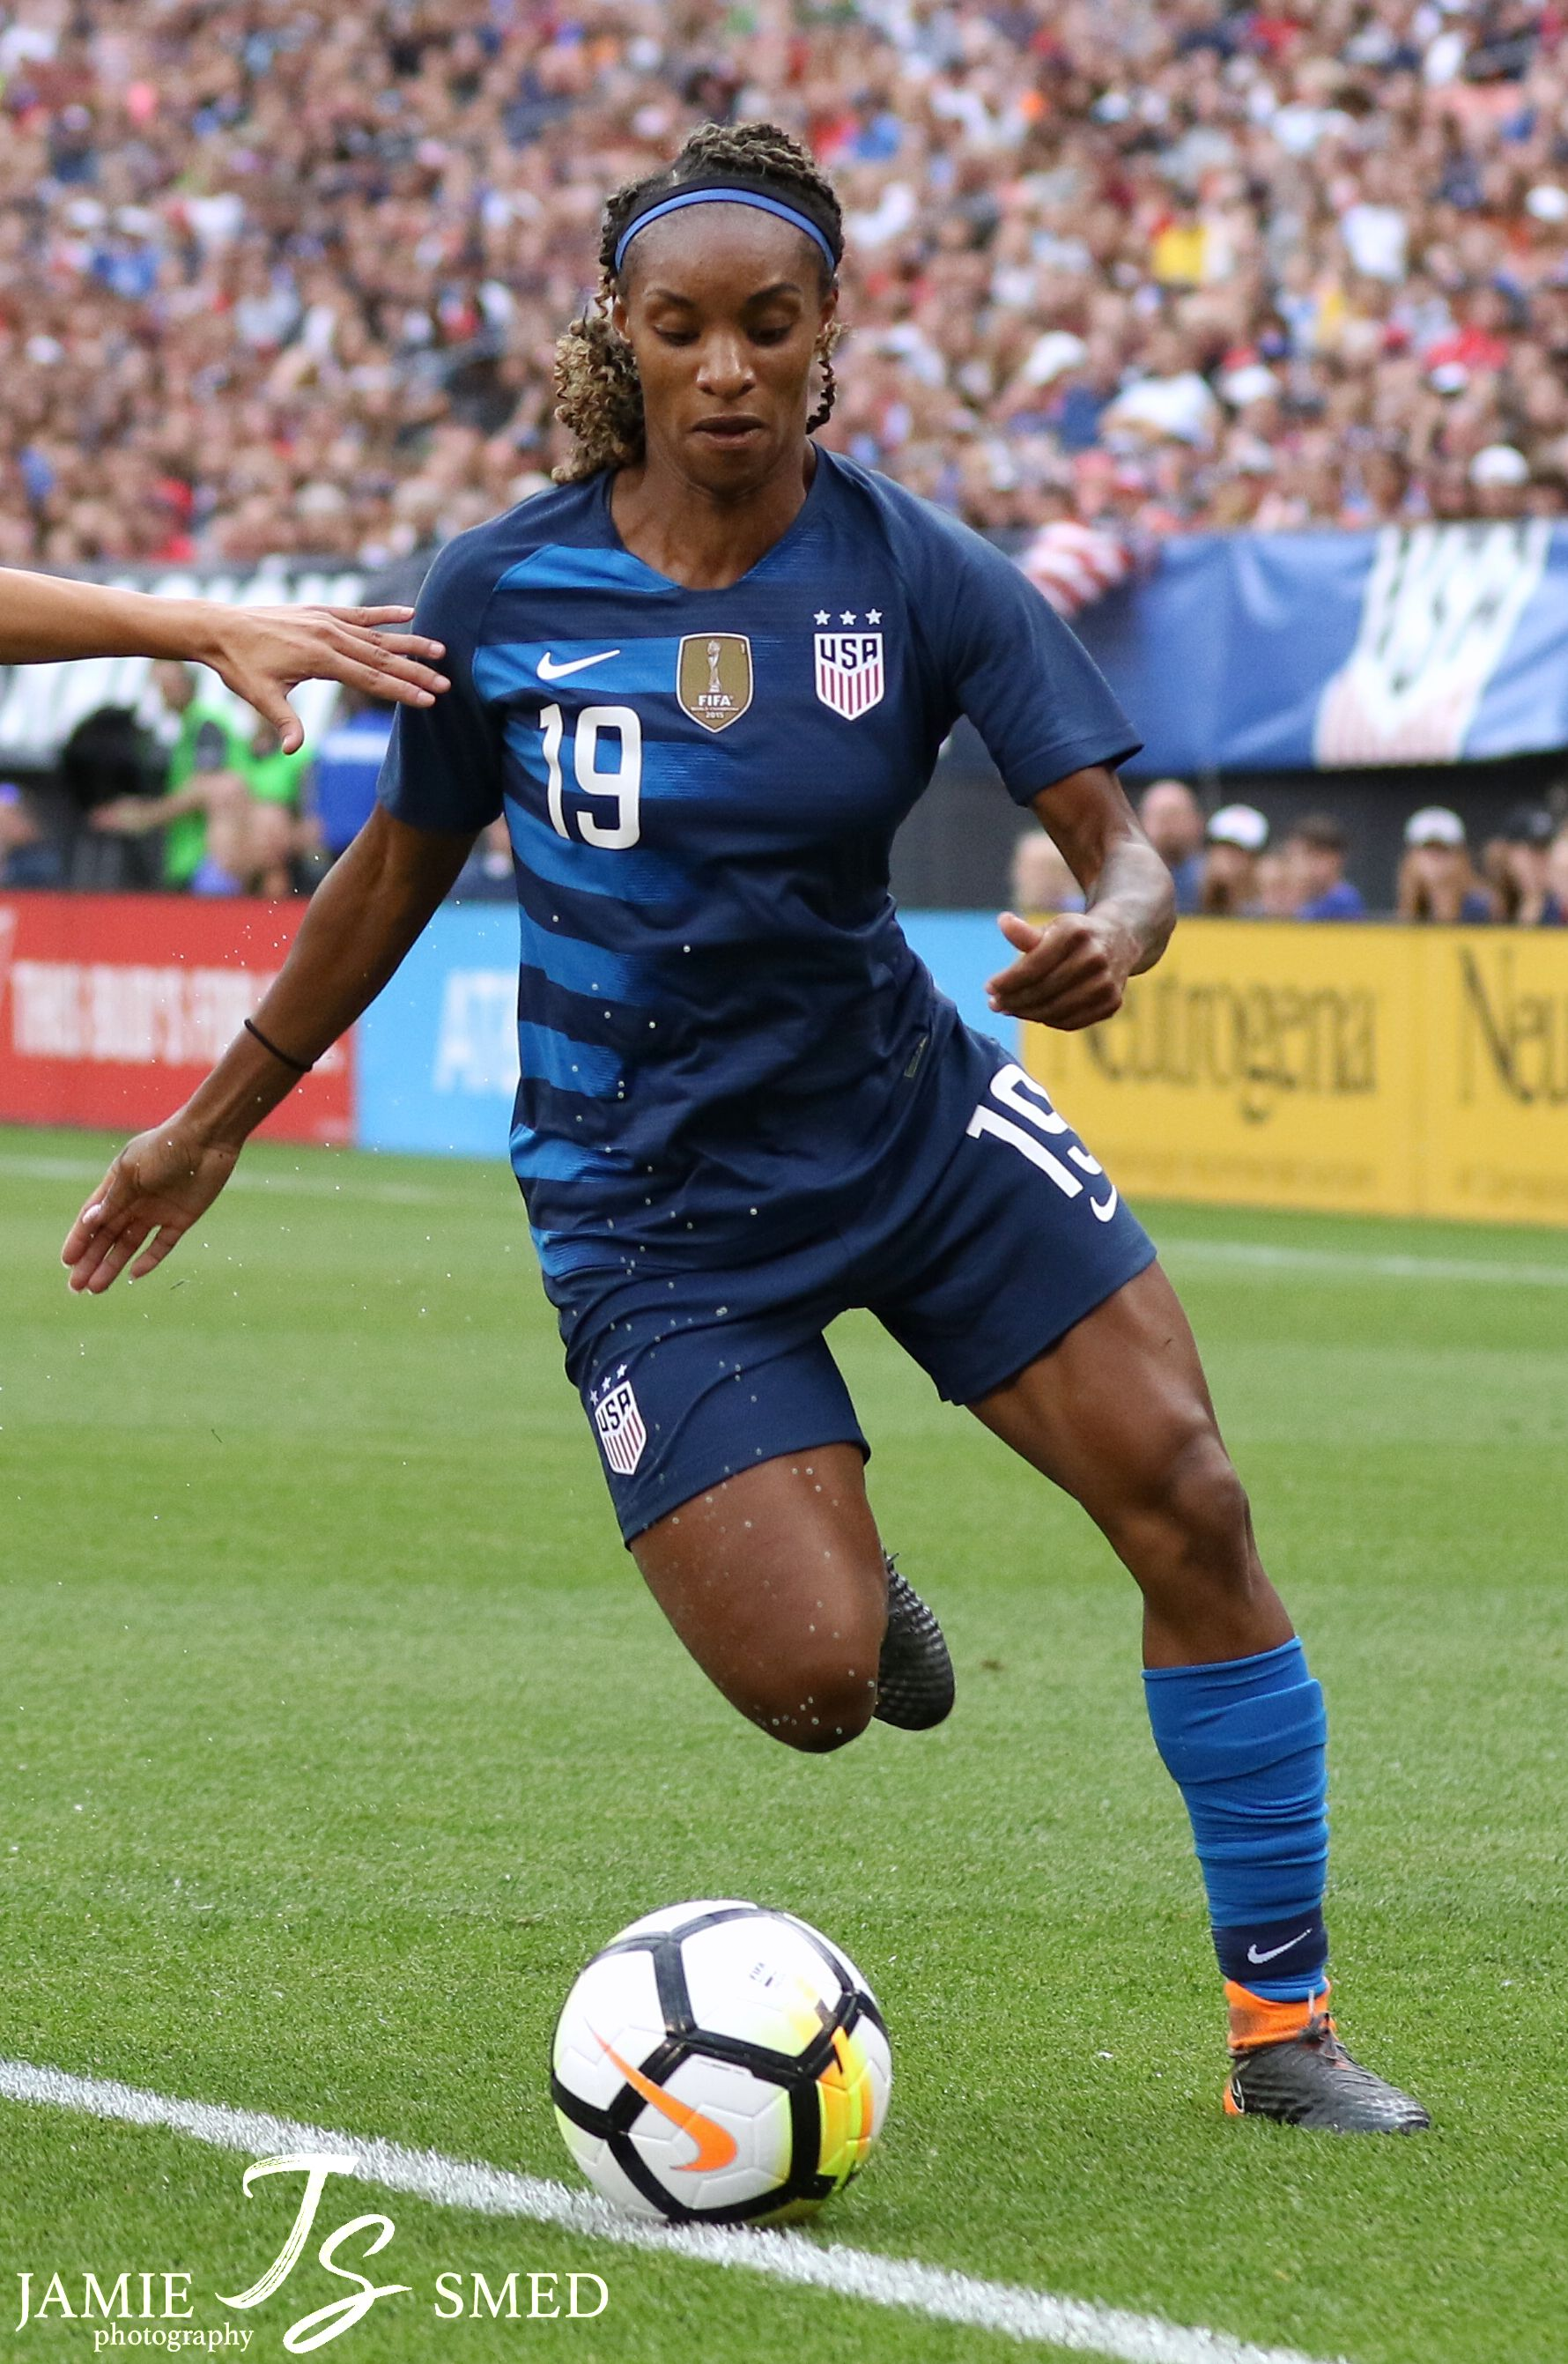 Crystal Dunn Uswnt Uswnt Soccer Womens Soccer Football Players Images